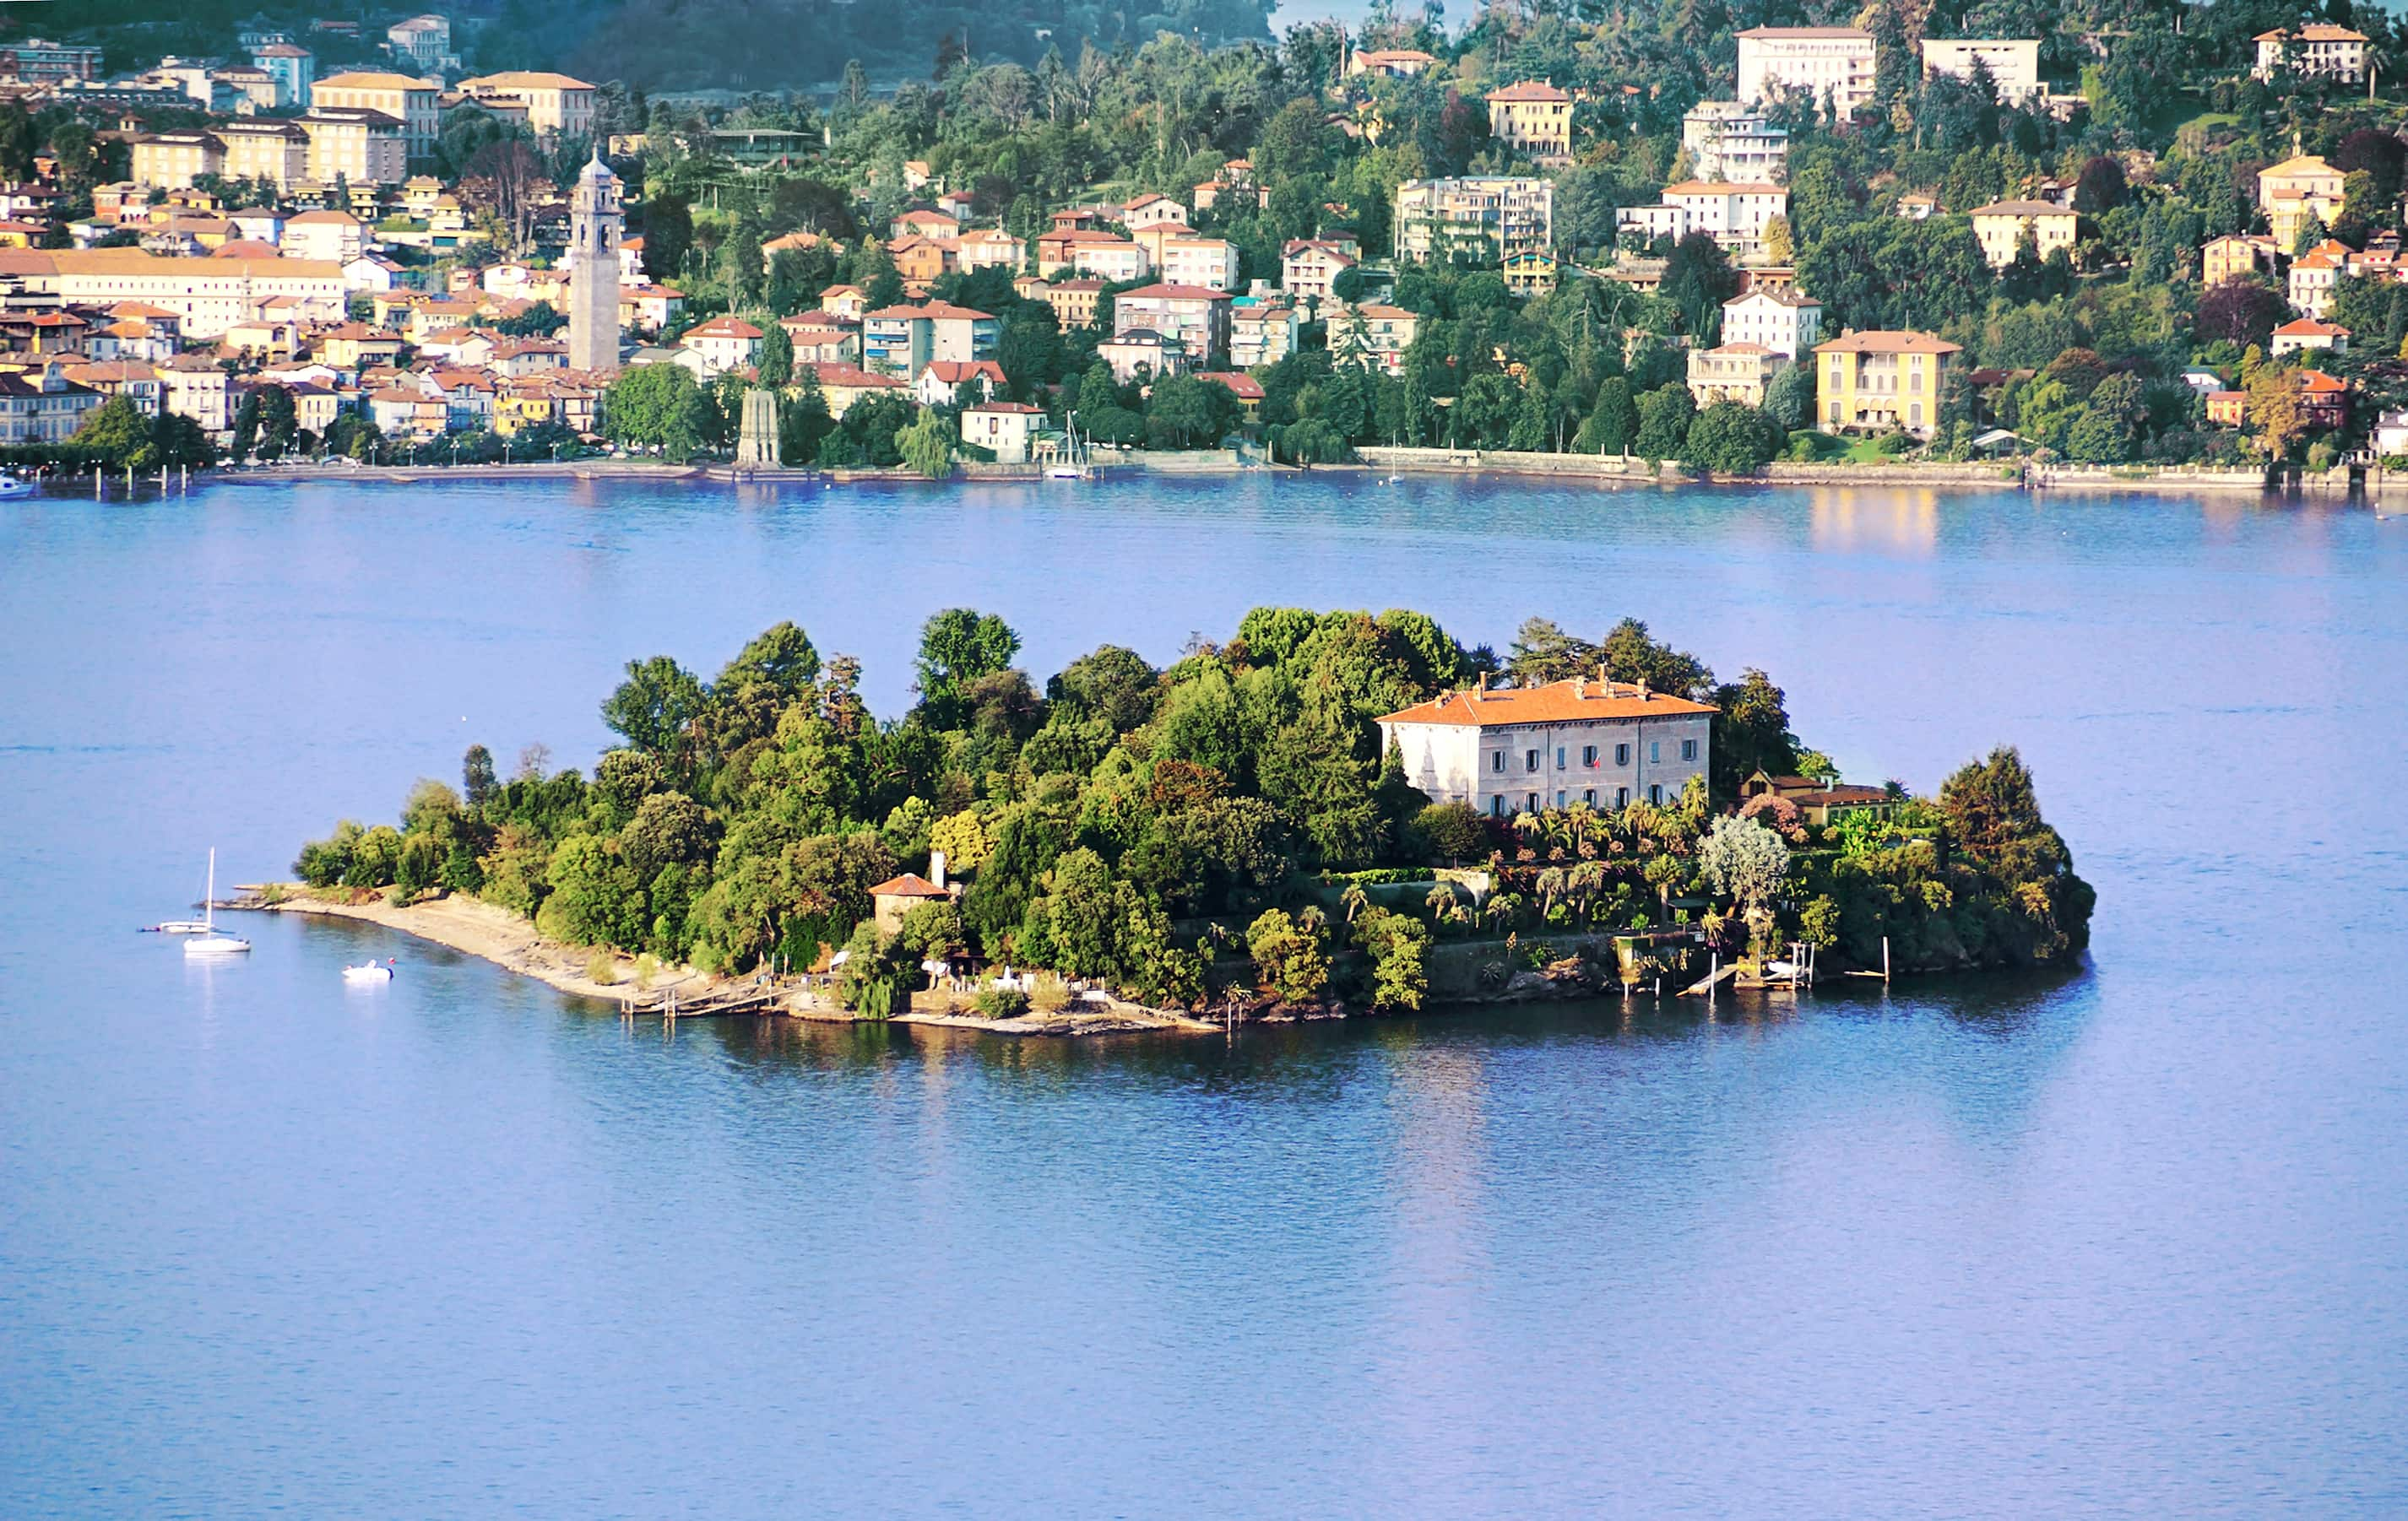 Aerial view of Isola Madre